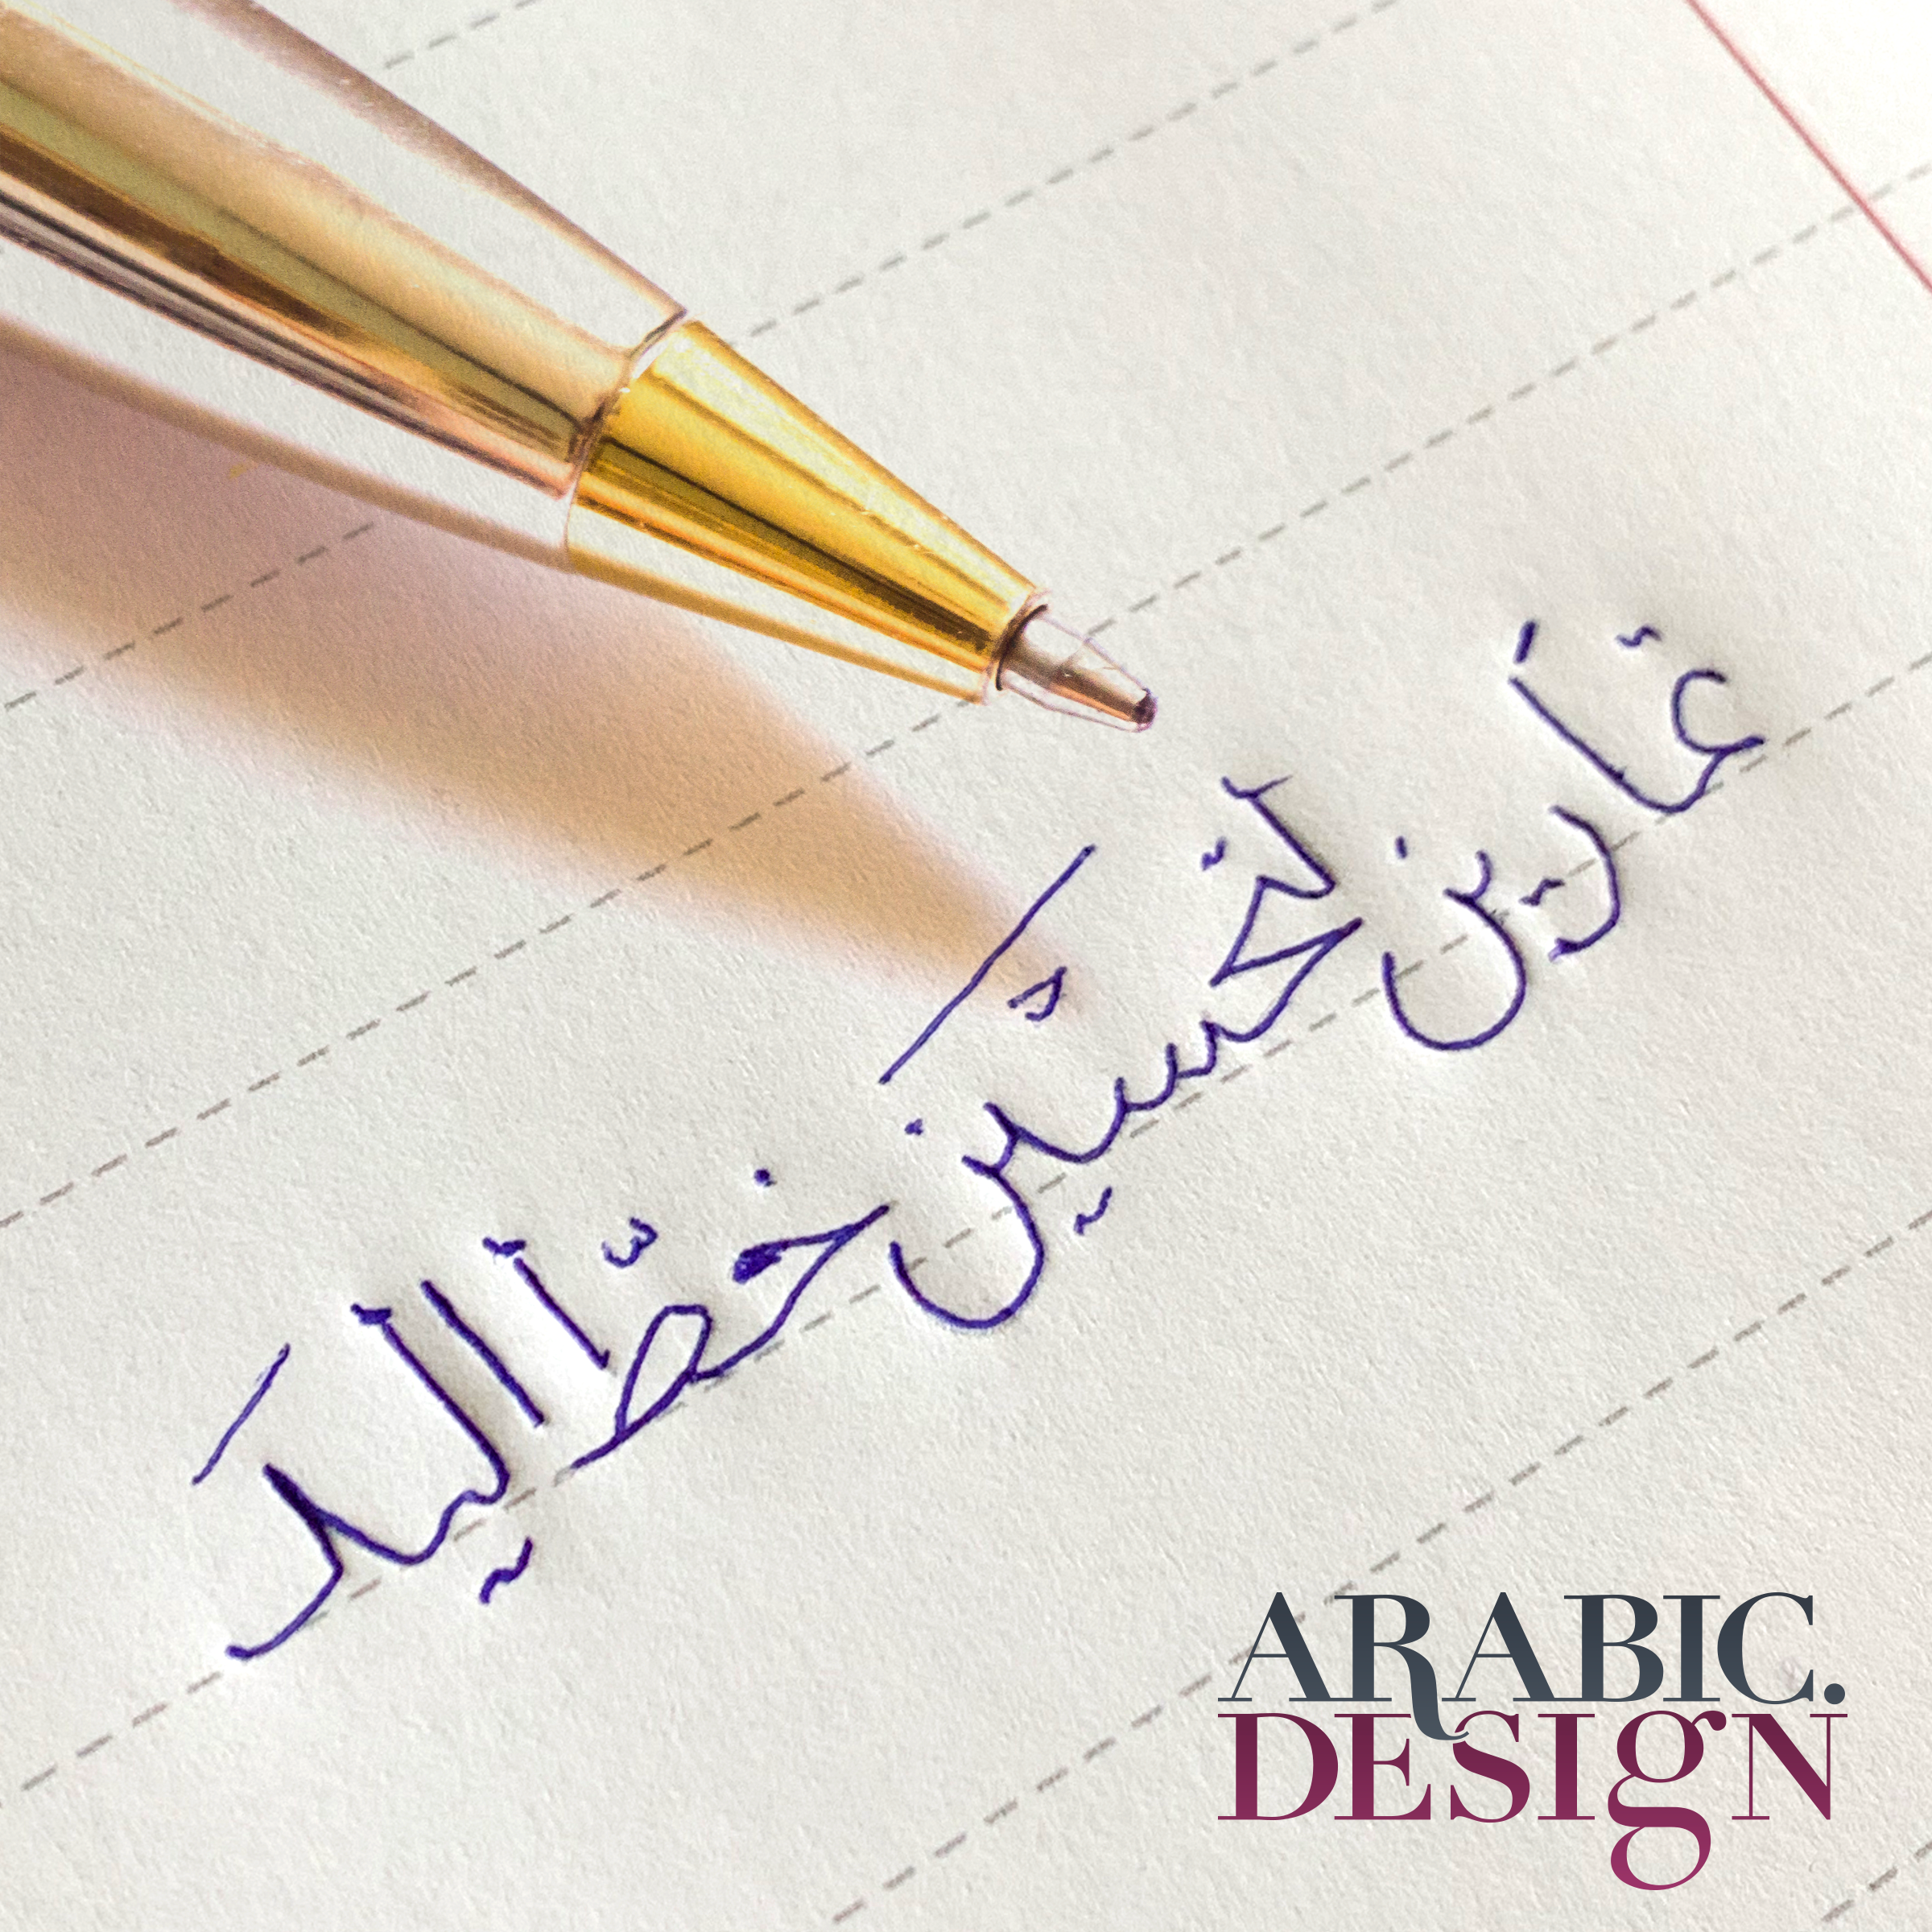 Ebook And Worksheets Archives Arabic Design Brush Lettering Practice Lettering Practice Brush Lettering